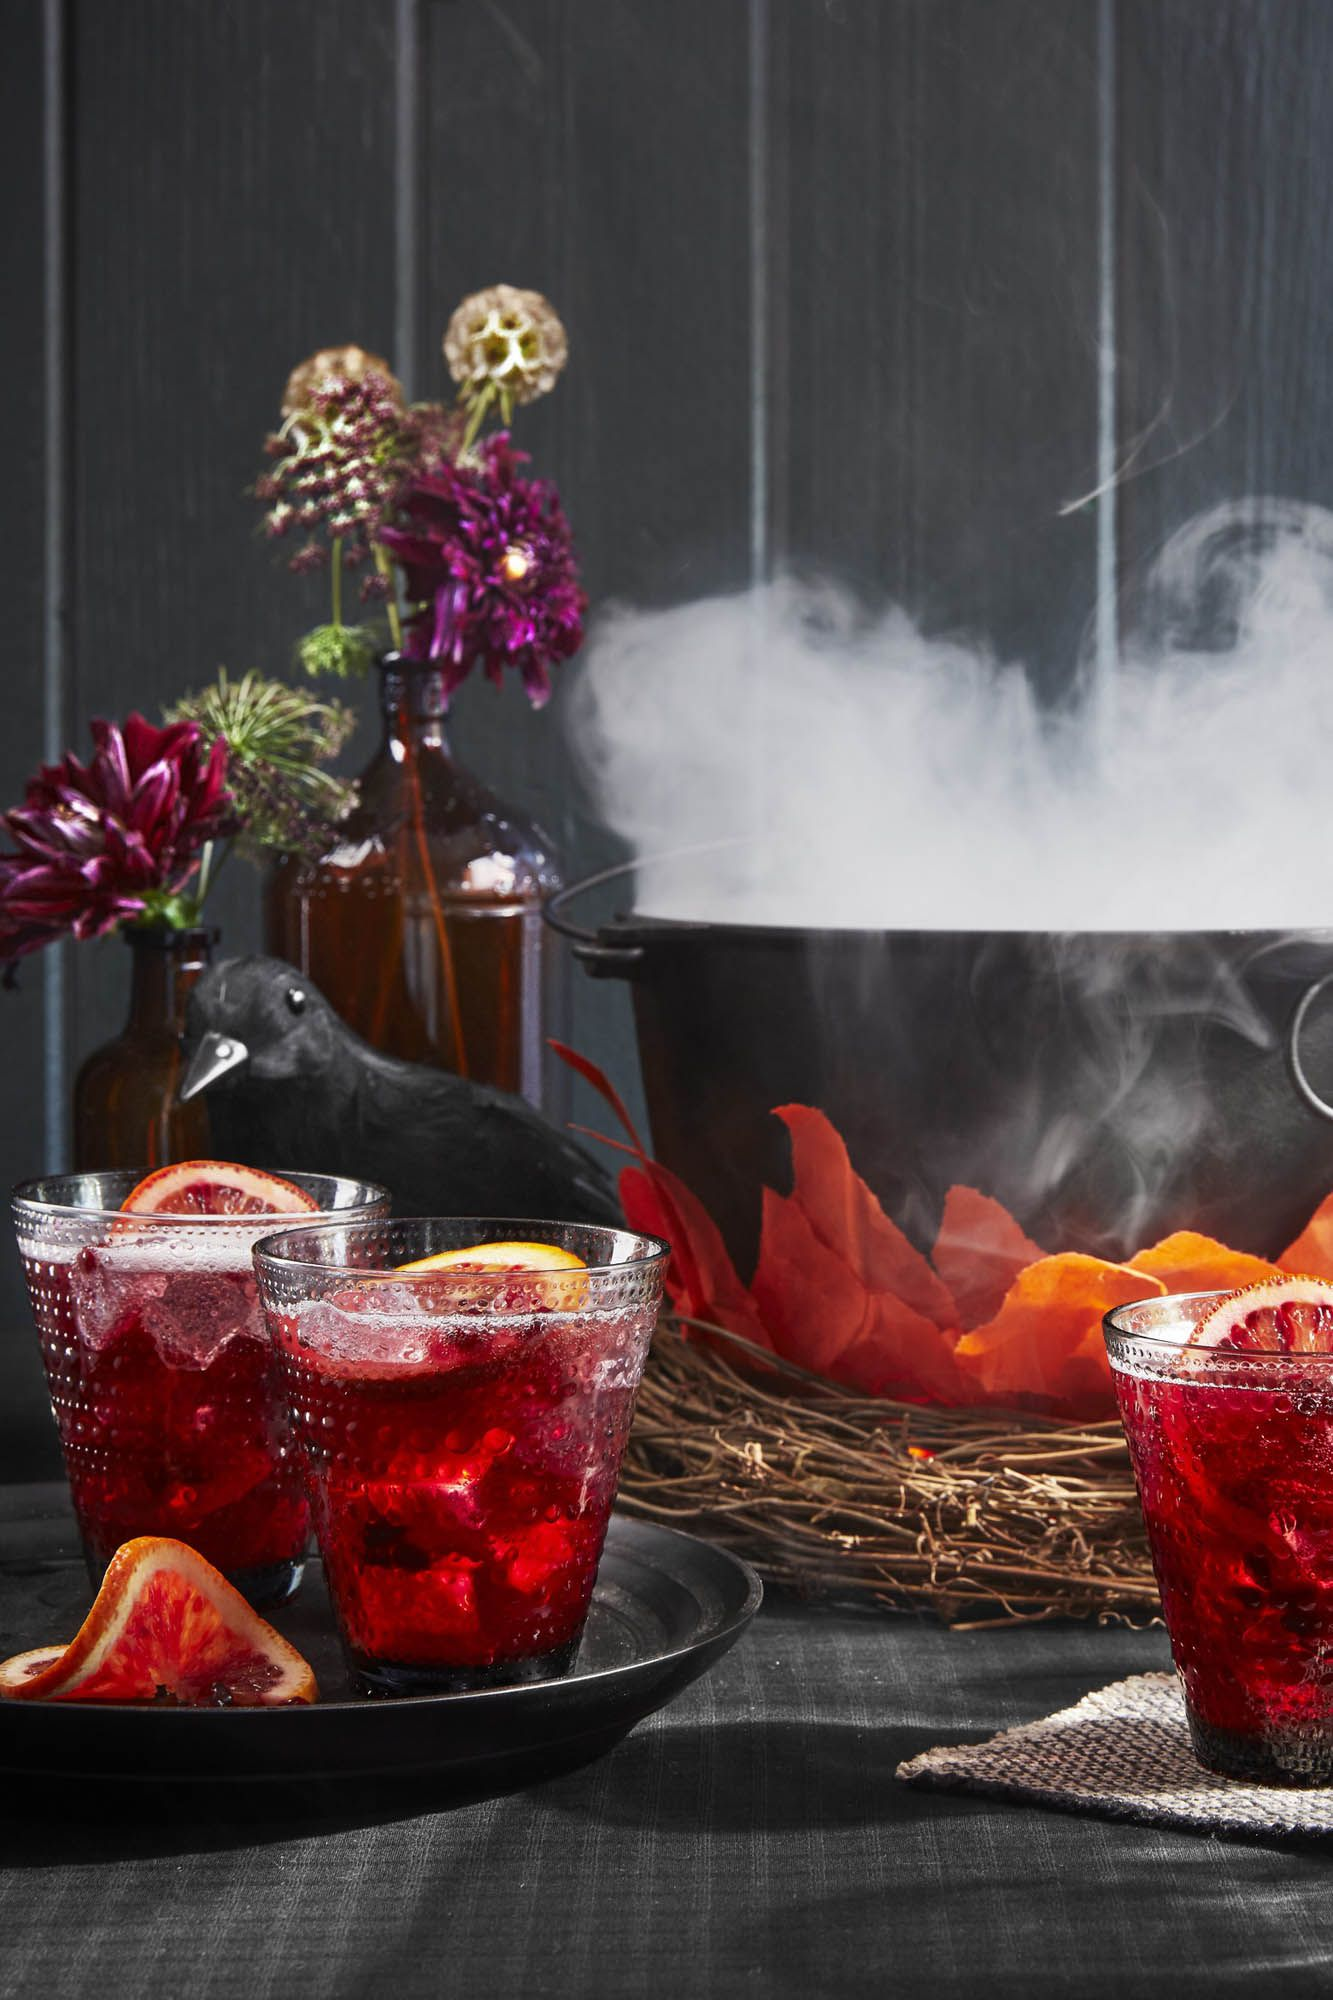 Pomegranate-Rum Punch